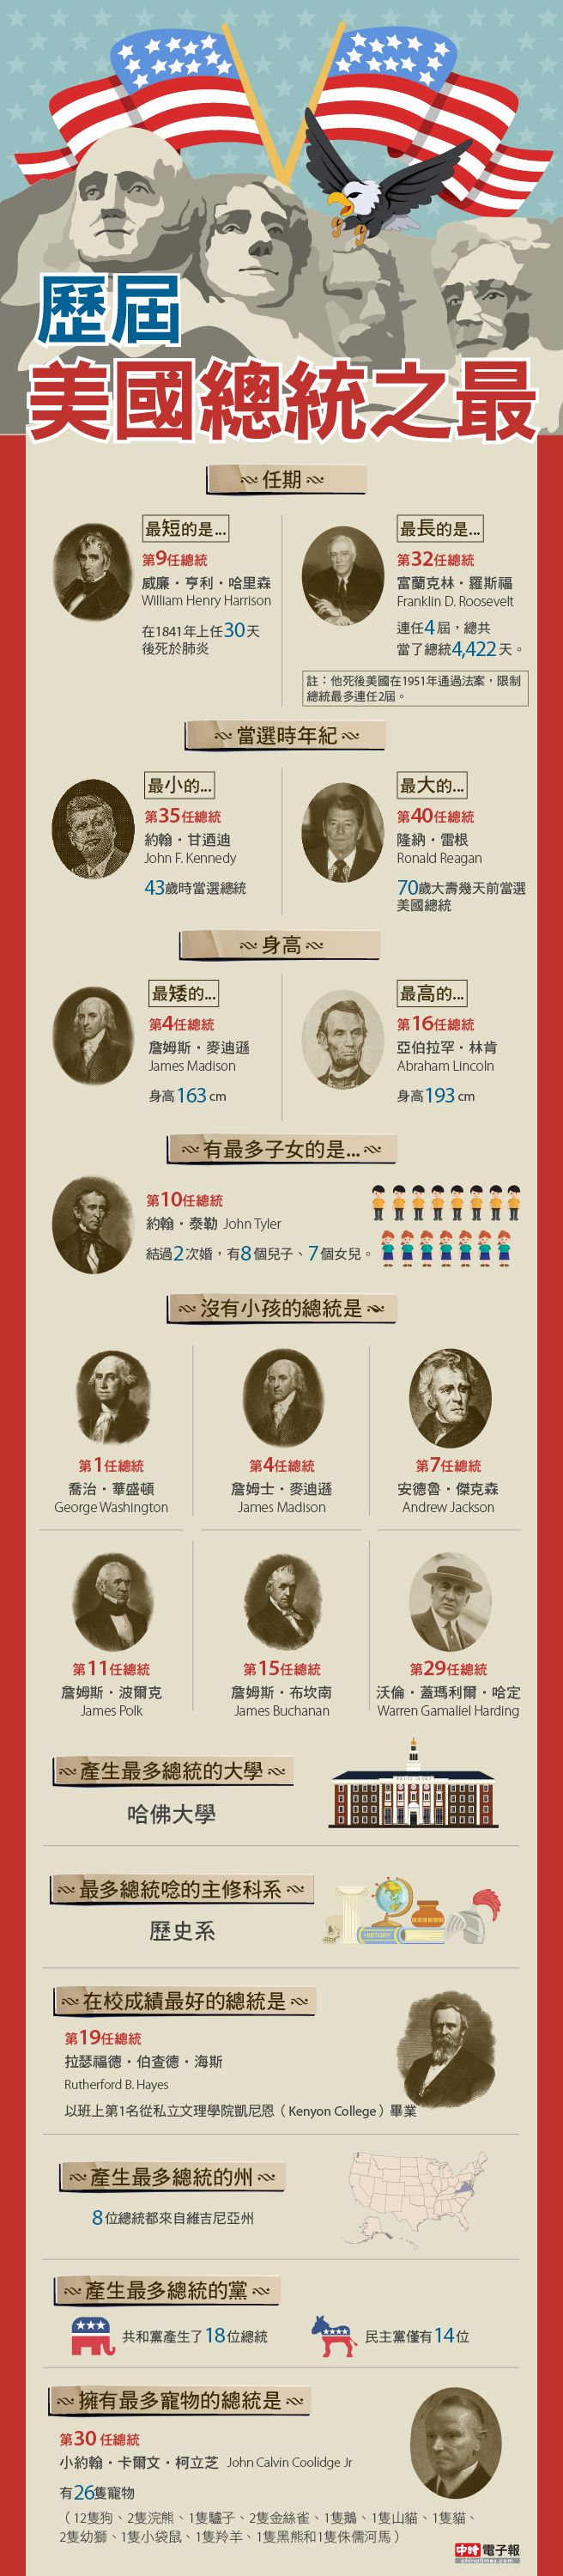 199 best graphic images on pinterest info graphics infographic 199 best graphic images on pinterest info graphics infographic and infographics publicscrutiny Image collections